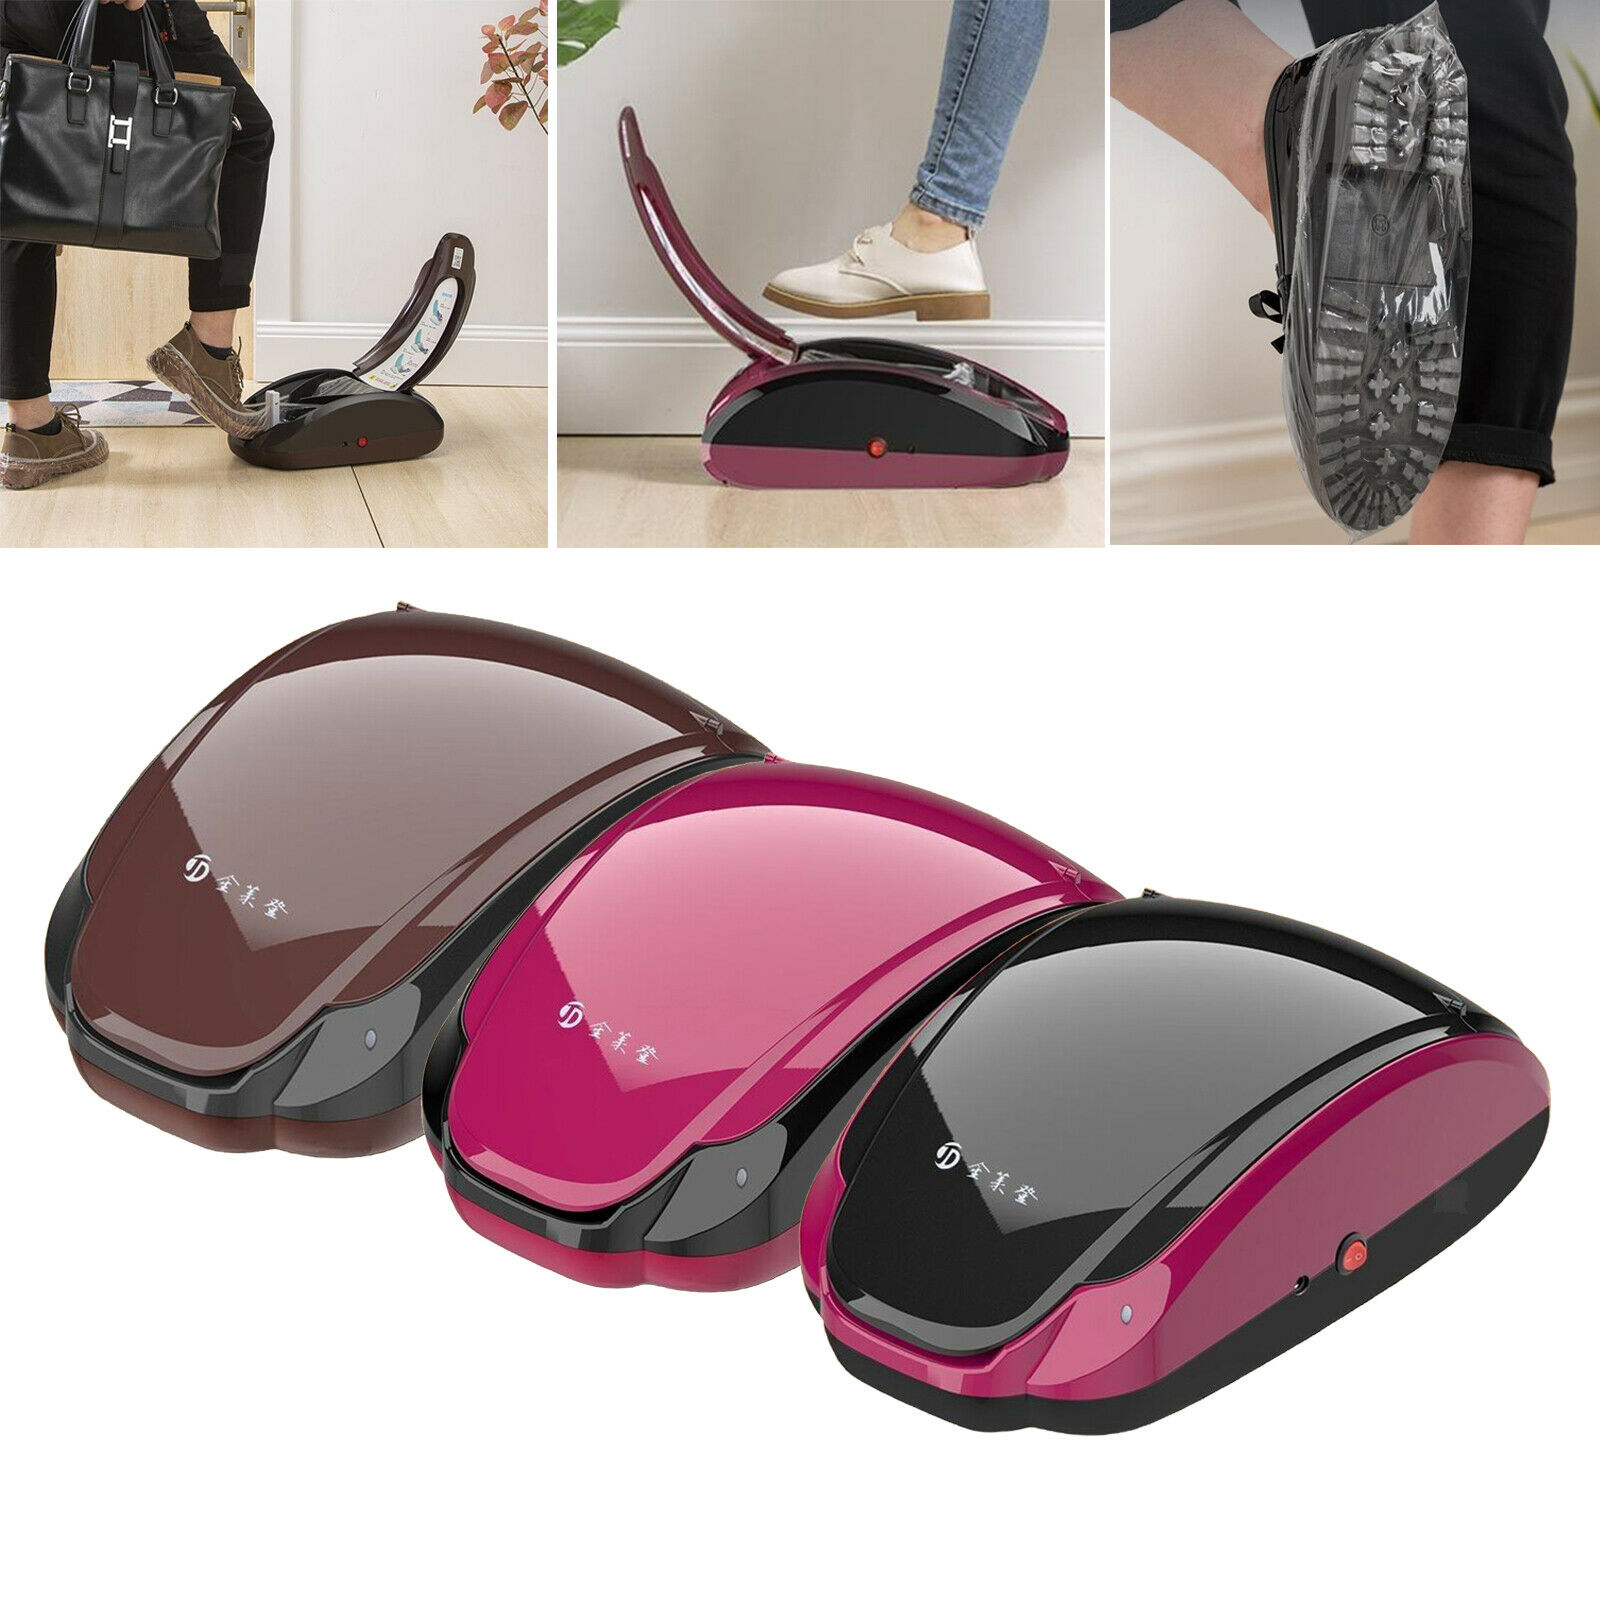 Automatic Shoe Cover Dispenser w / Roll 400 PIECES Waterproof